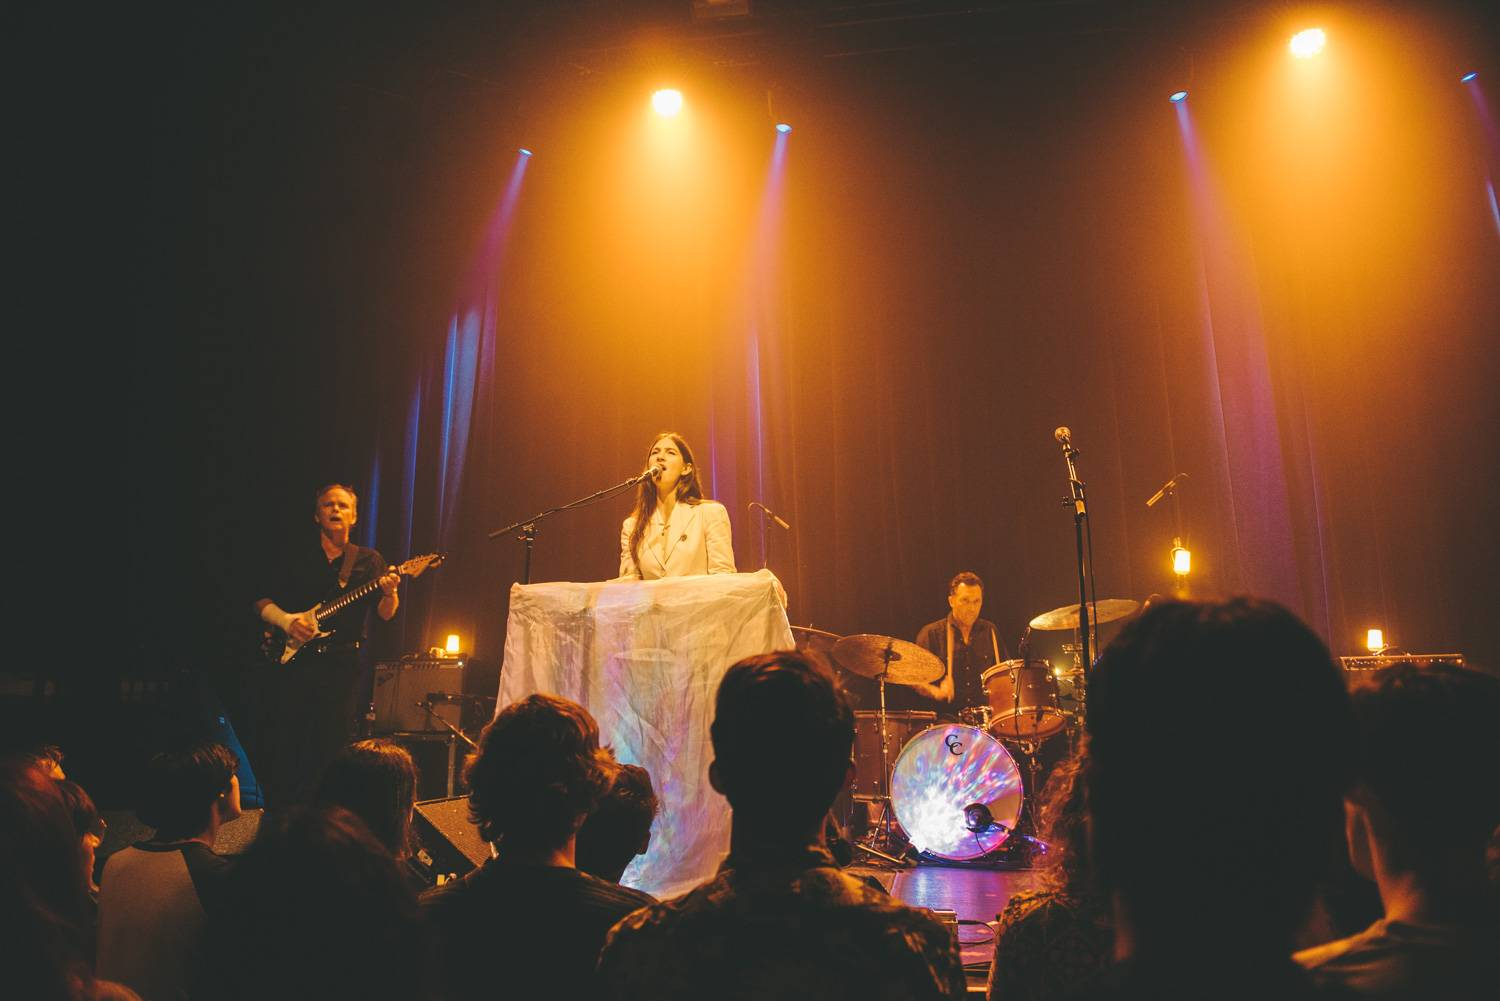 Weyes Blood at the Imperial, Vancouver, Aug 14 2019. Pavel Boiko photo.